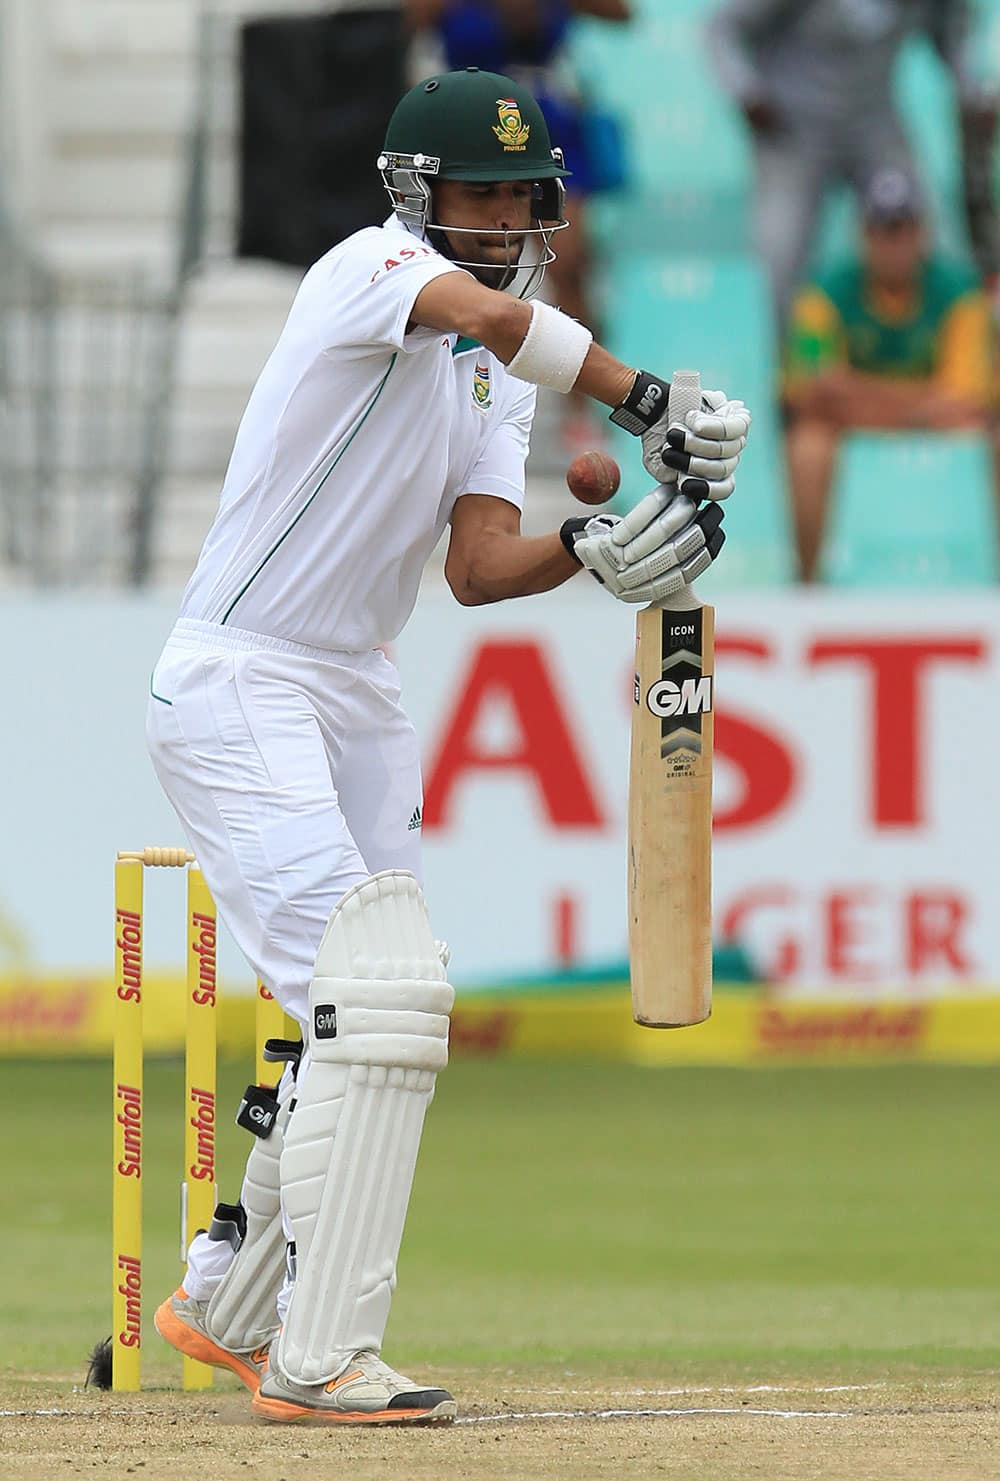 South Africa's batsman Robin Peterson plays a shot on the forth day of their cricket test match against India at Kingsmead stadium, Durban, South Africa.